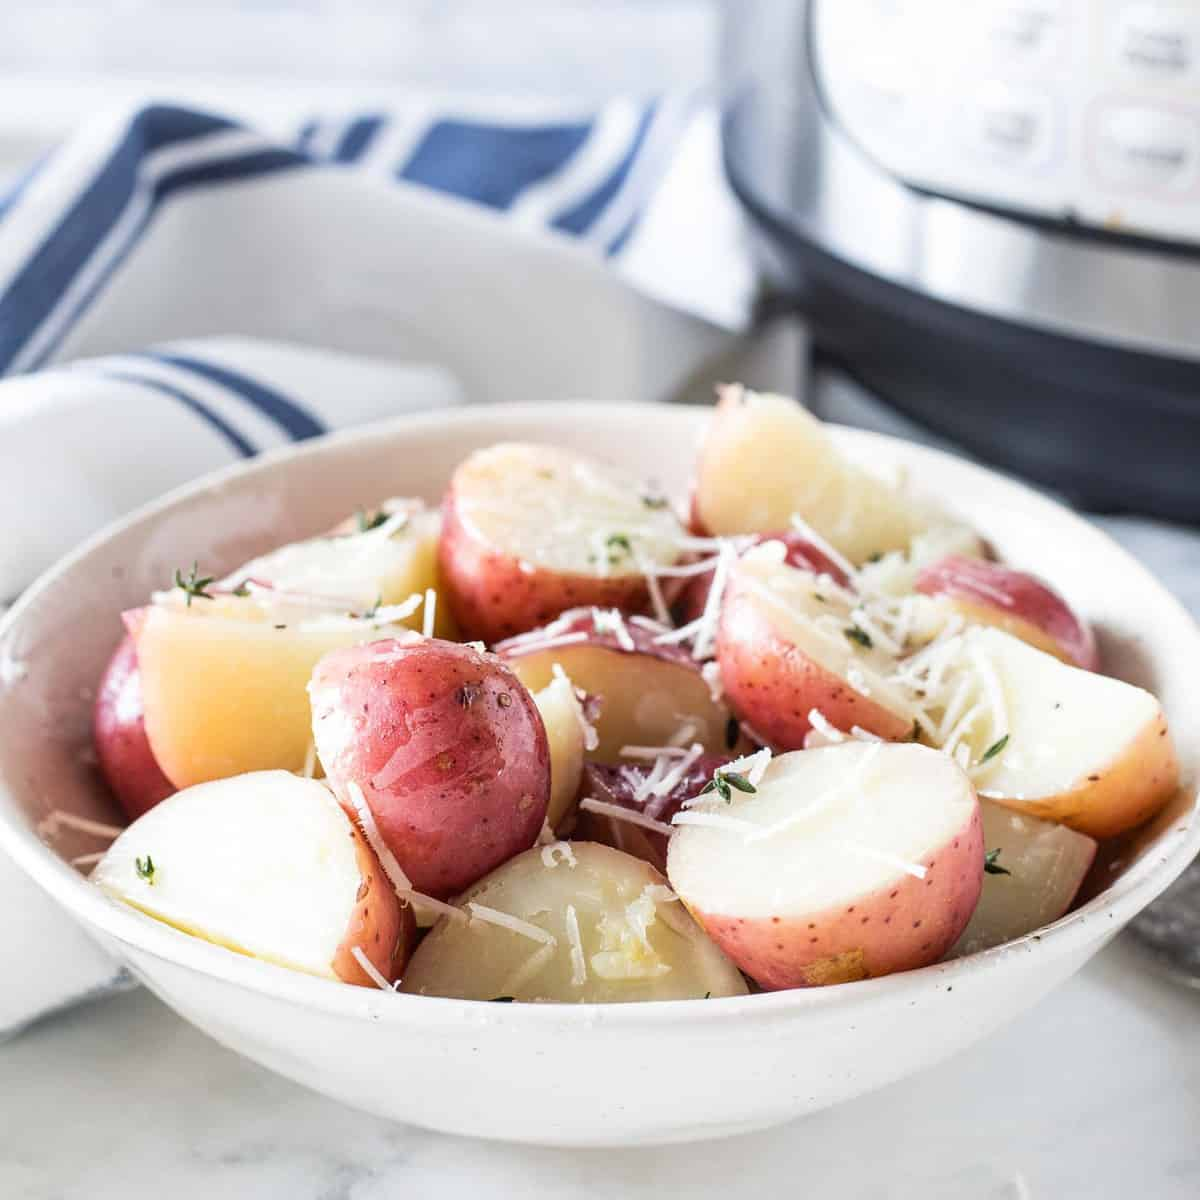 Red potatoes sprinkled with parmesan cheese in a bowl.